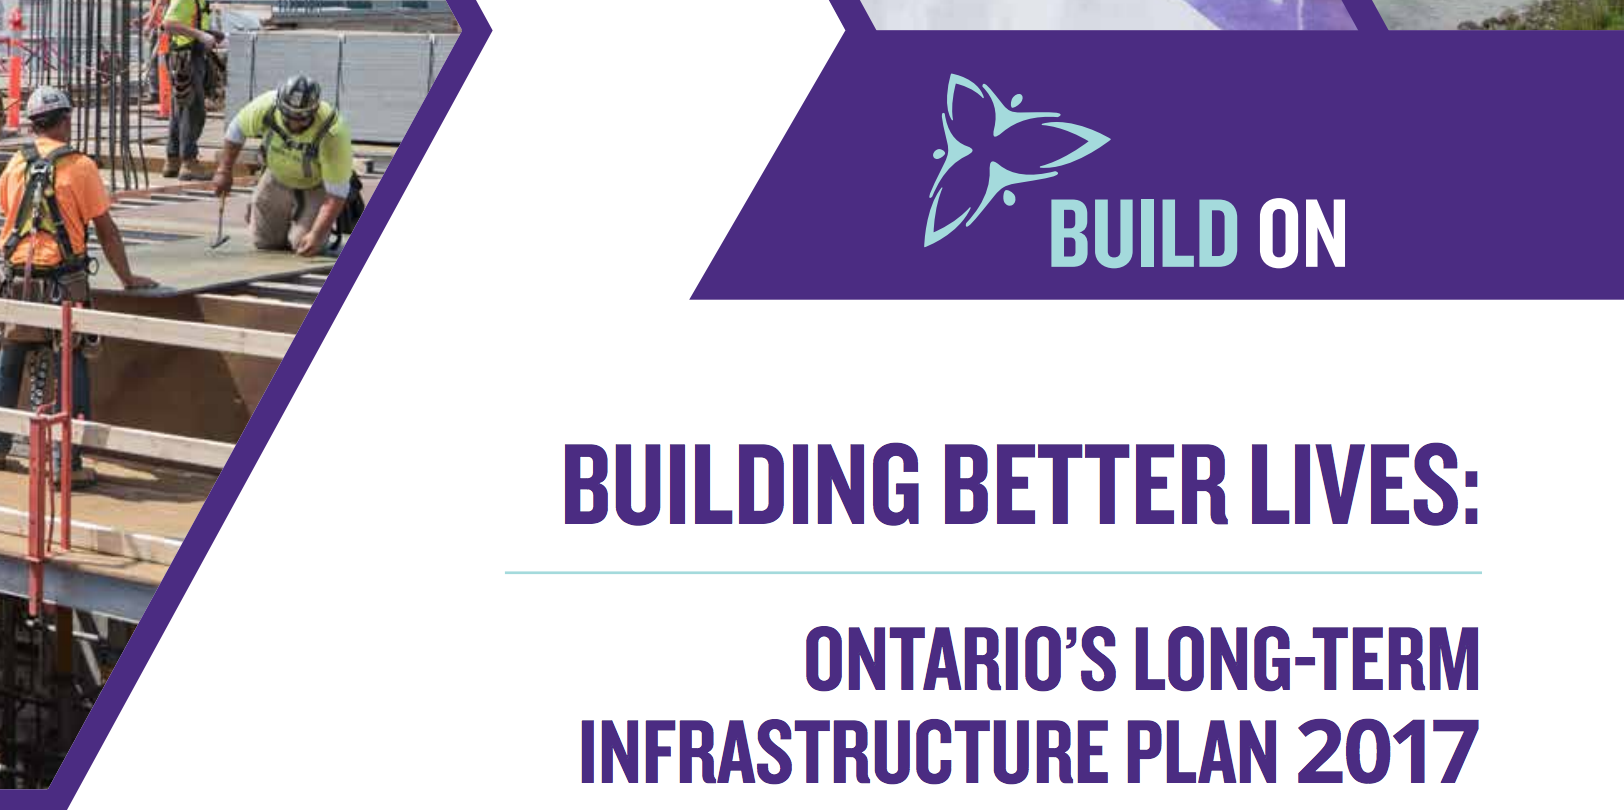 Five things to know about Ontario's Long-Term Infrastructure Plan